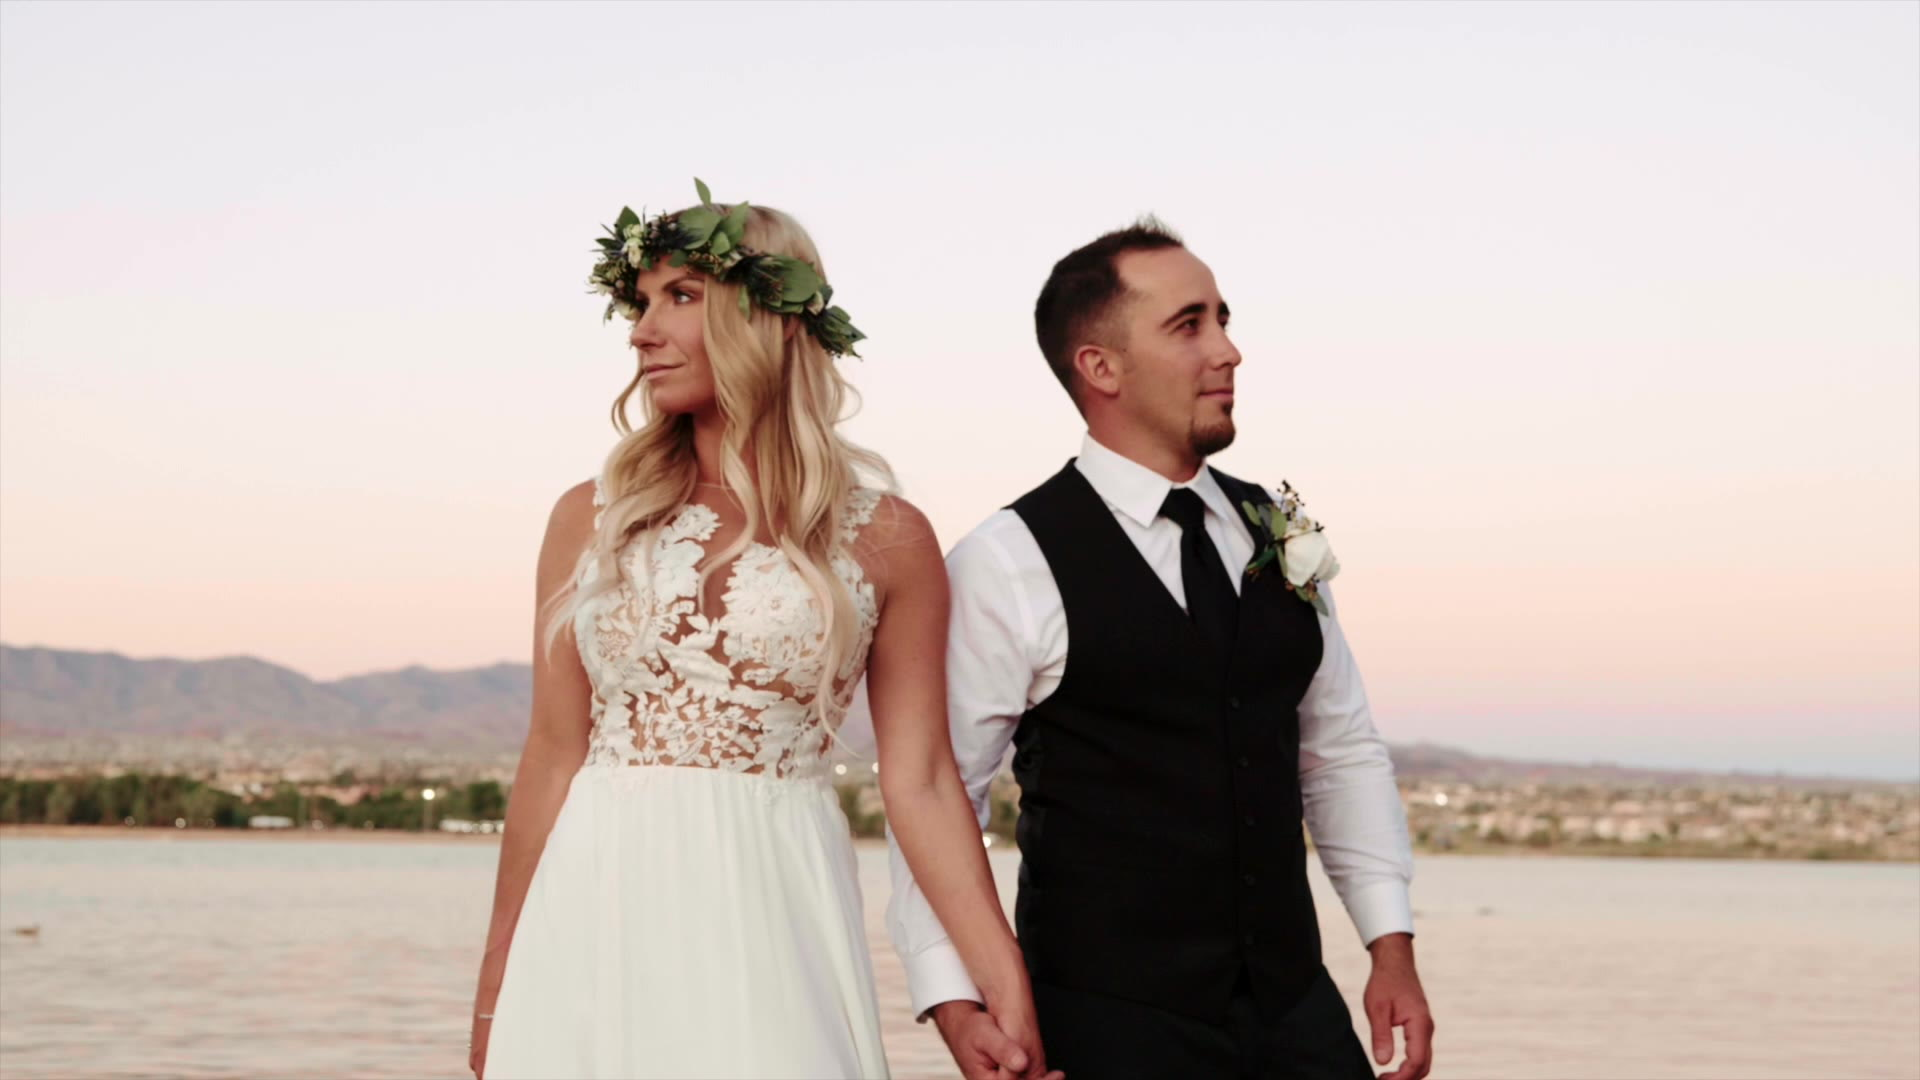 Kaley + Mark | Lake Havasu City, Arizona | Nautical Beachfront Resort